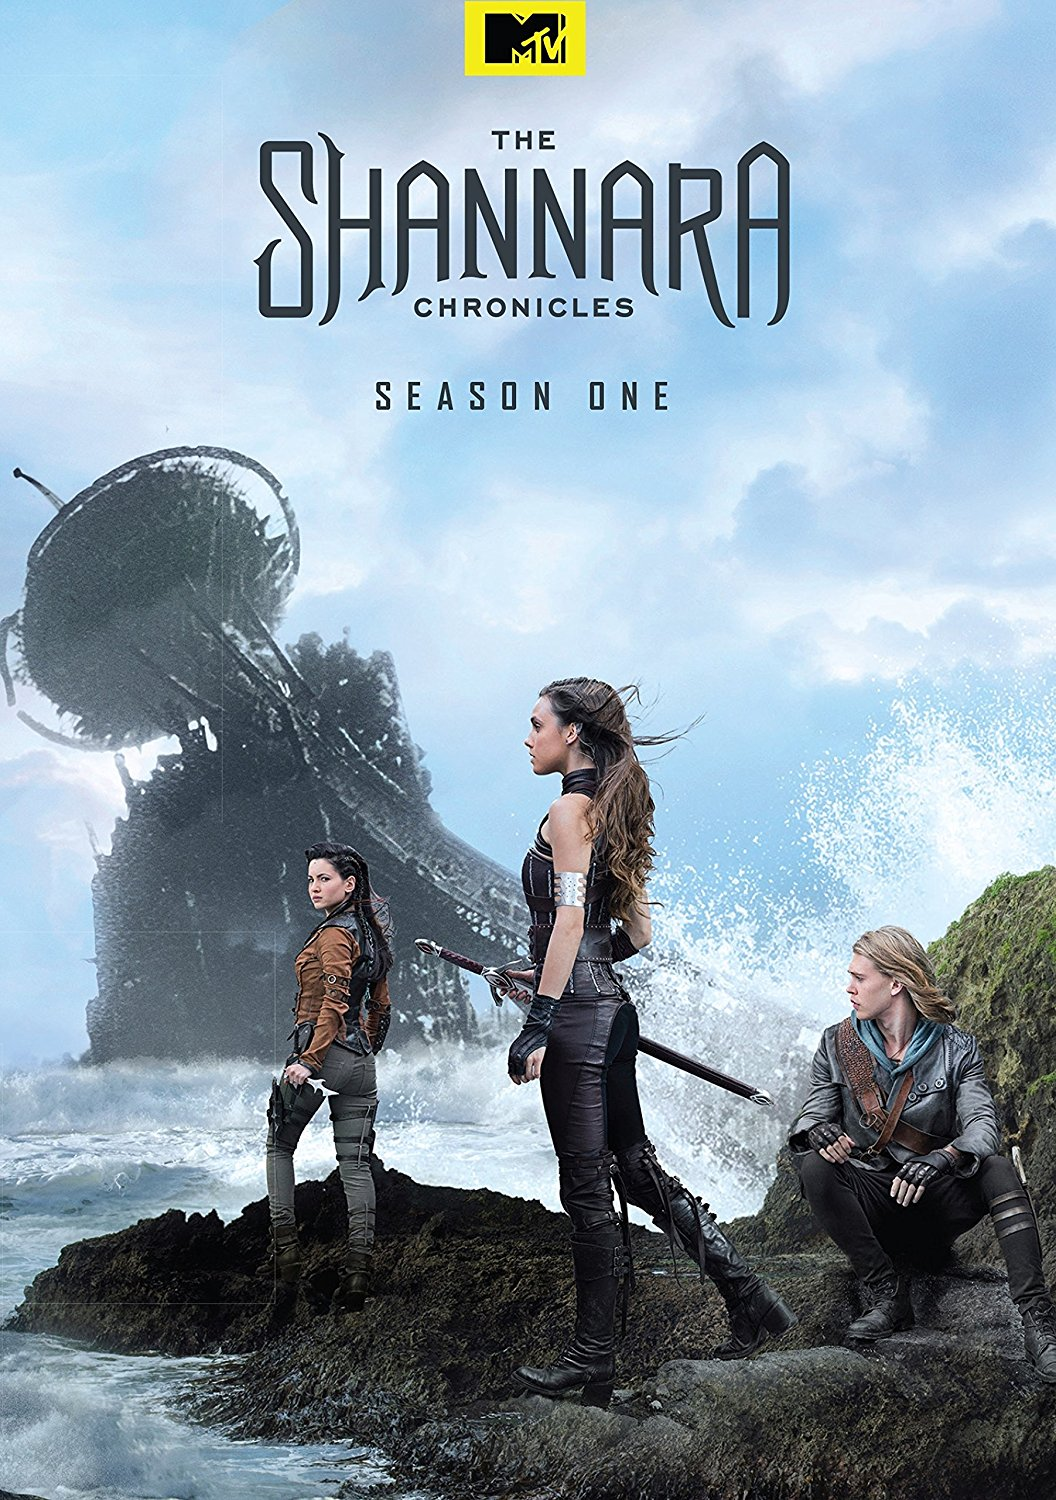 The Shannara Chronicles Season 02 Full Episodes 123movies